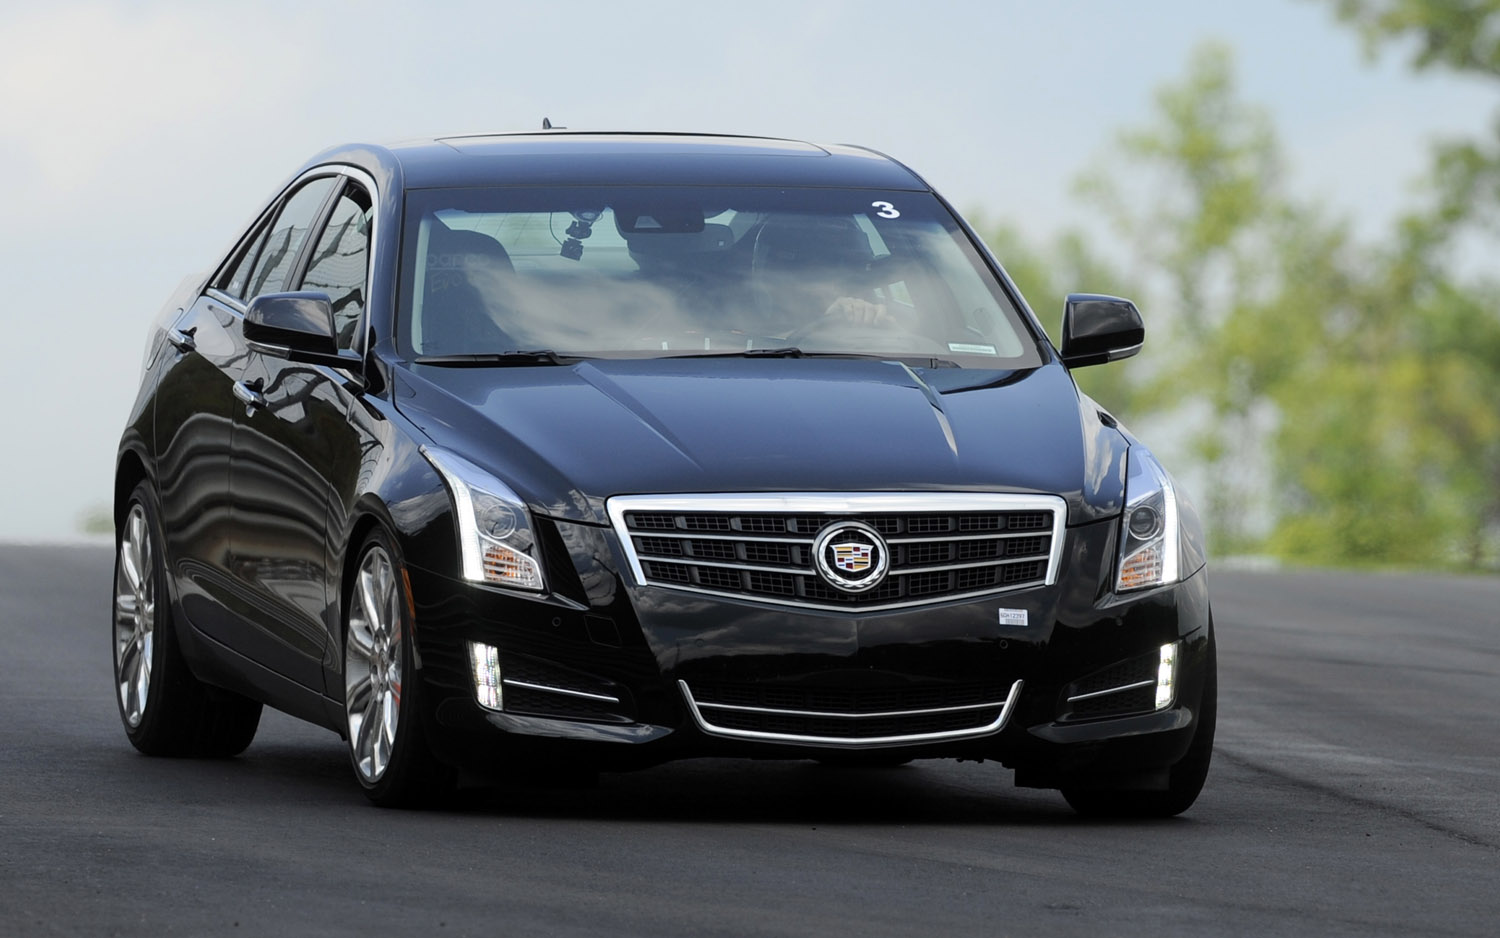 cadillac ats pictures